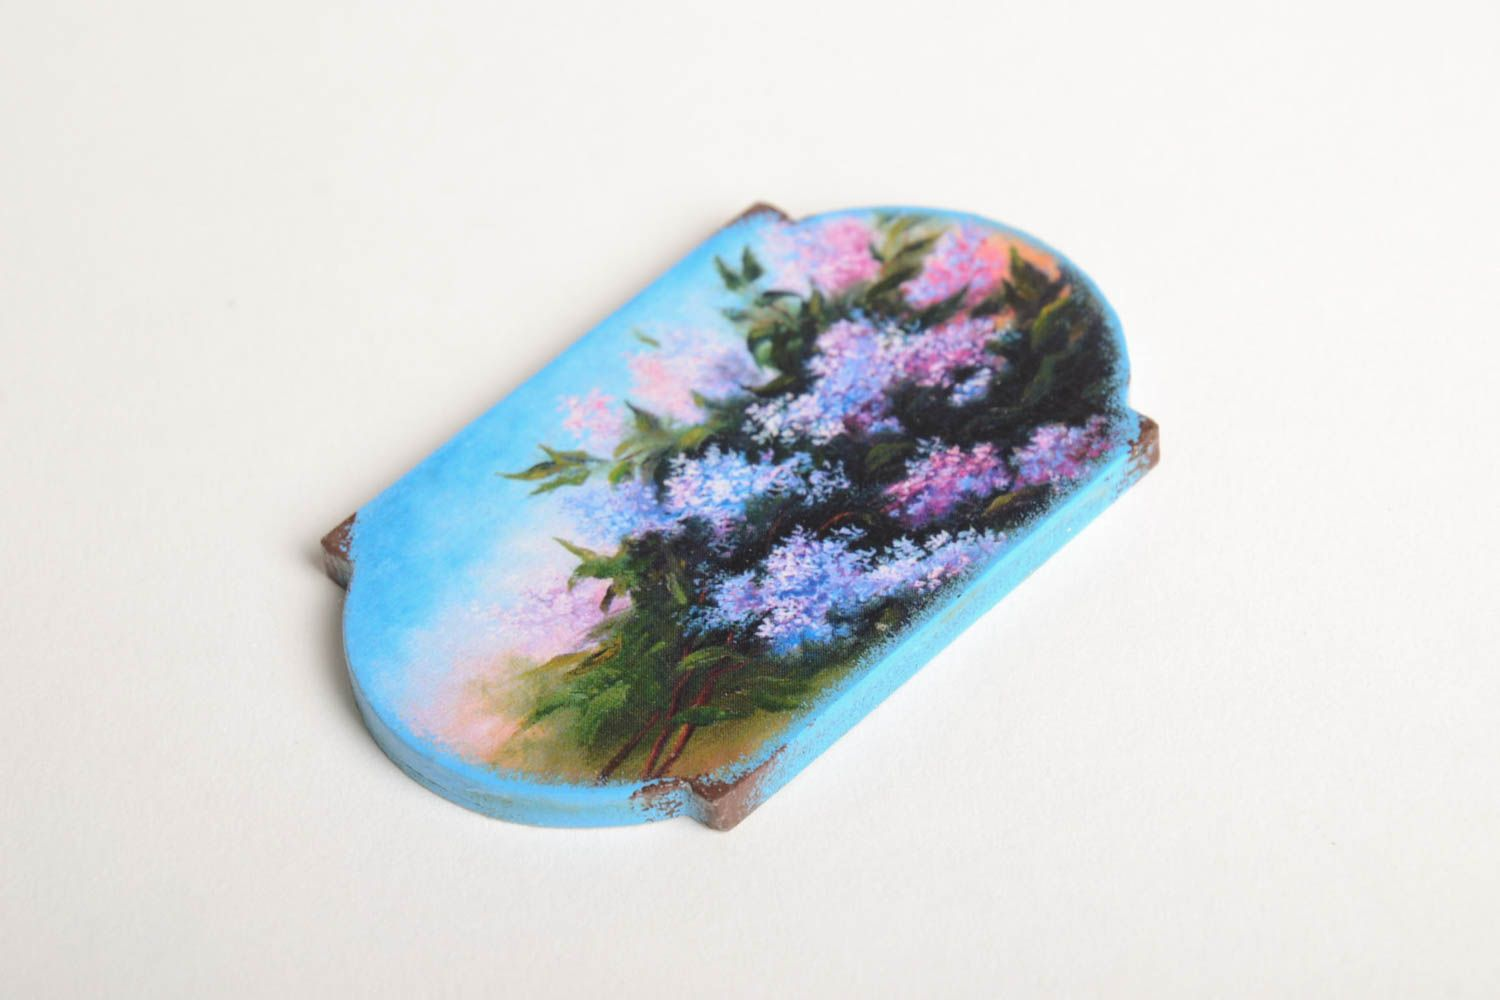 Unusual handmade fridge magnet kitchen supplies small gifts decorative use only photo 5